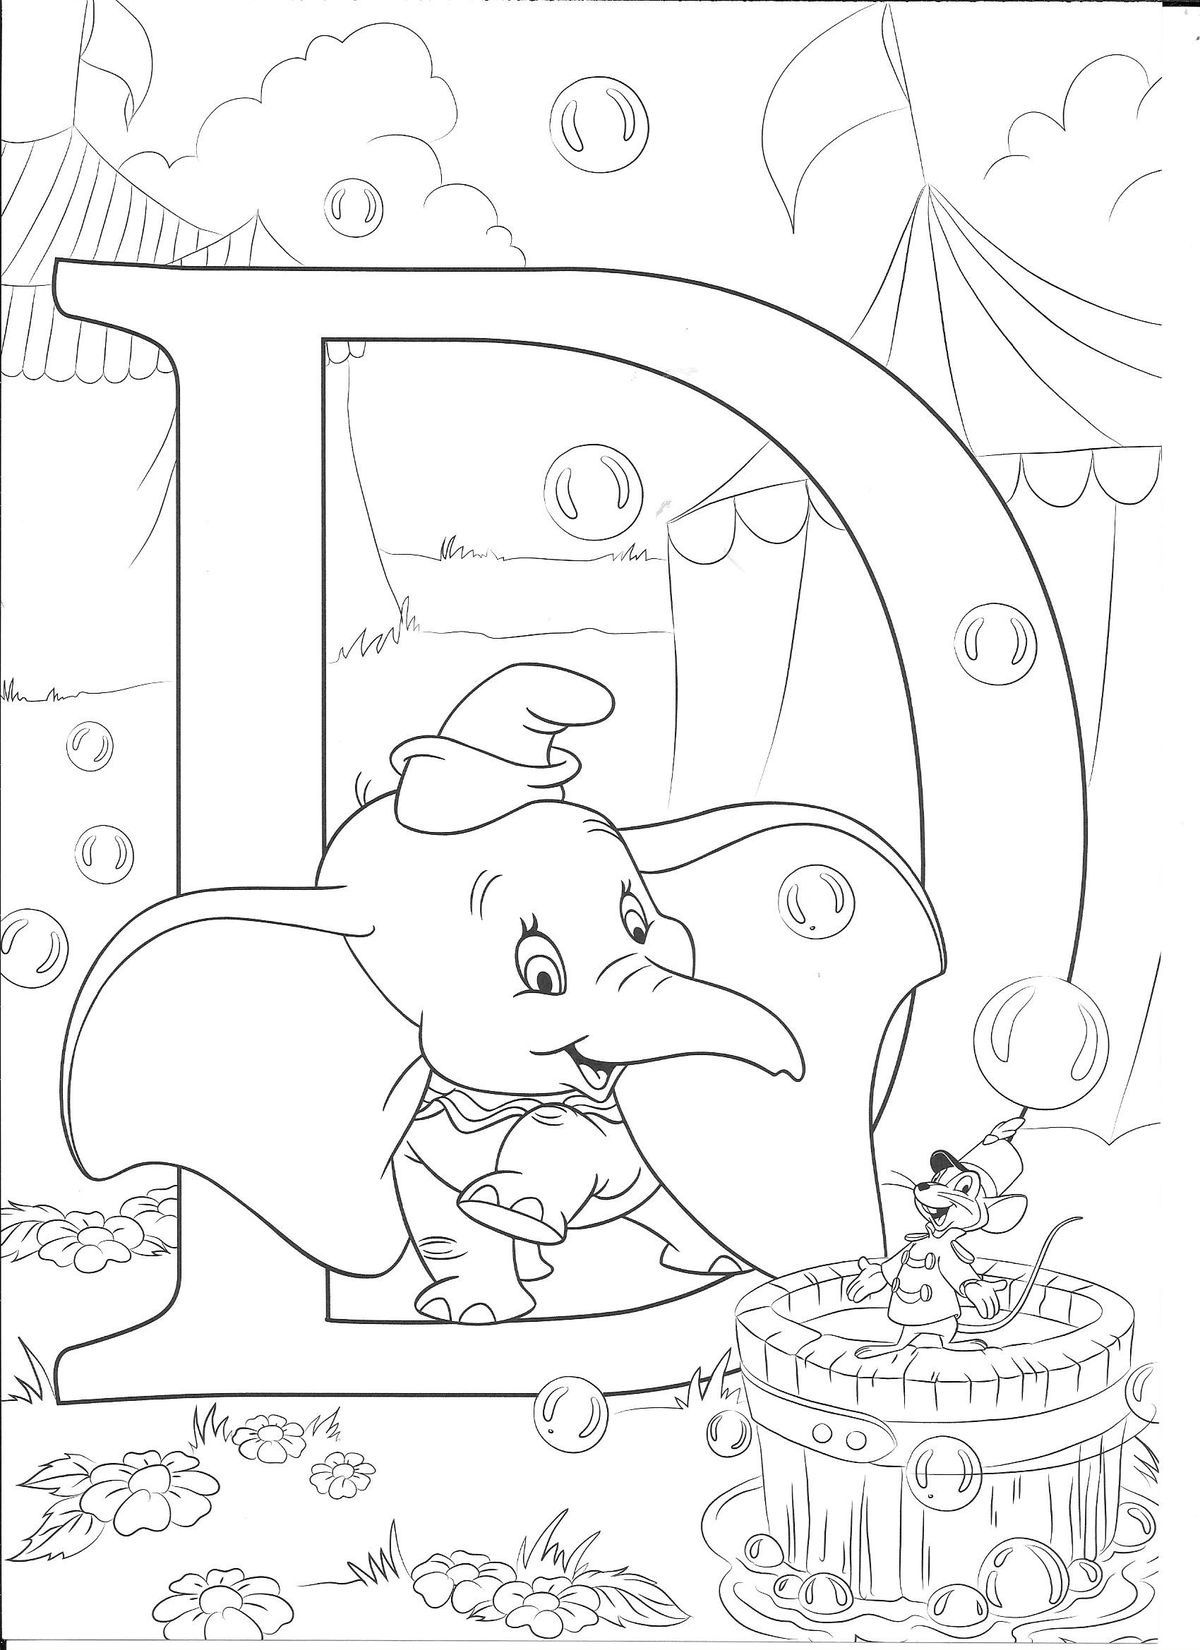 Pin By Mini On Alphabet Coloring Sheets Disney Coloring Pages Printables Abc Coloring Pages Disney Coloring Sheets